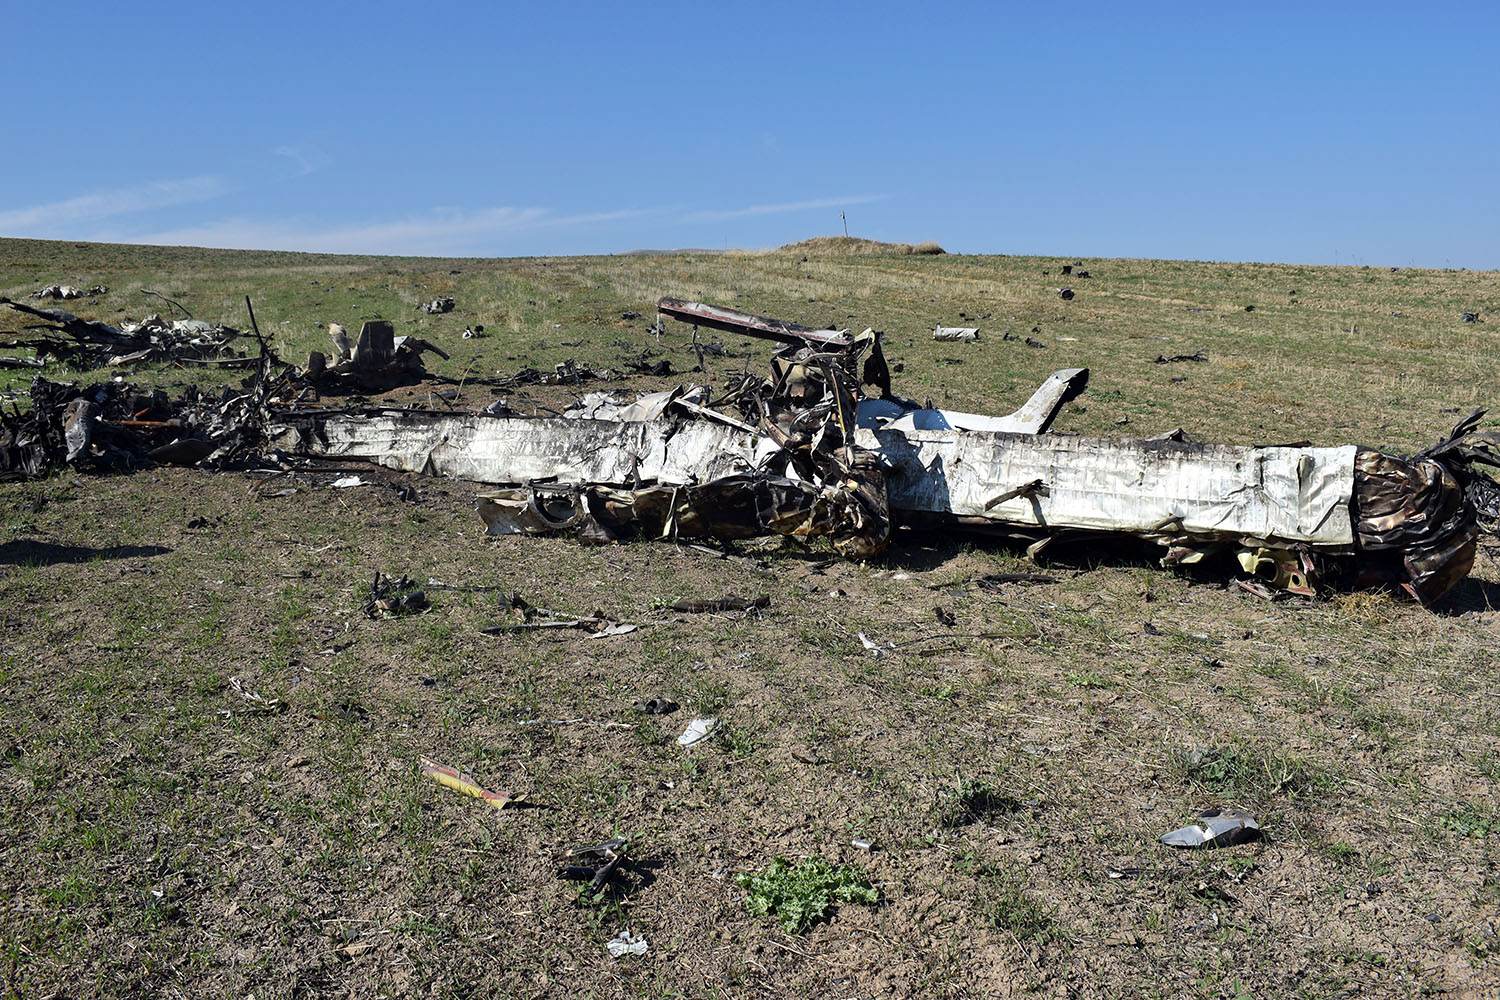 A drone that Artsakh Defense Army soldiers claim they downed near Martuni, Armenia, close to the front line with Azerbaijan, on Oct. 25. Soldiers say it is a Soviet-era An-2 biplane that has been repurposed and fitted with explosives for bombing attacks.